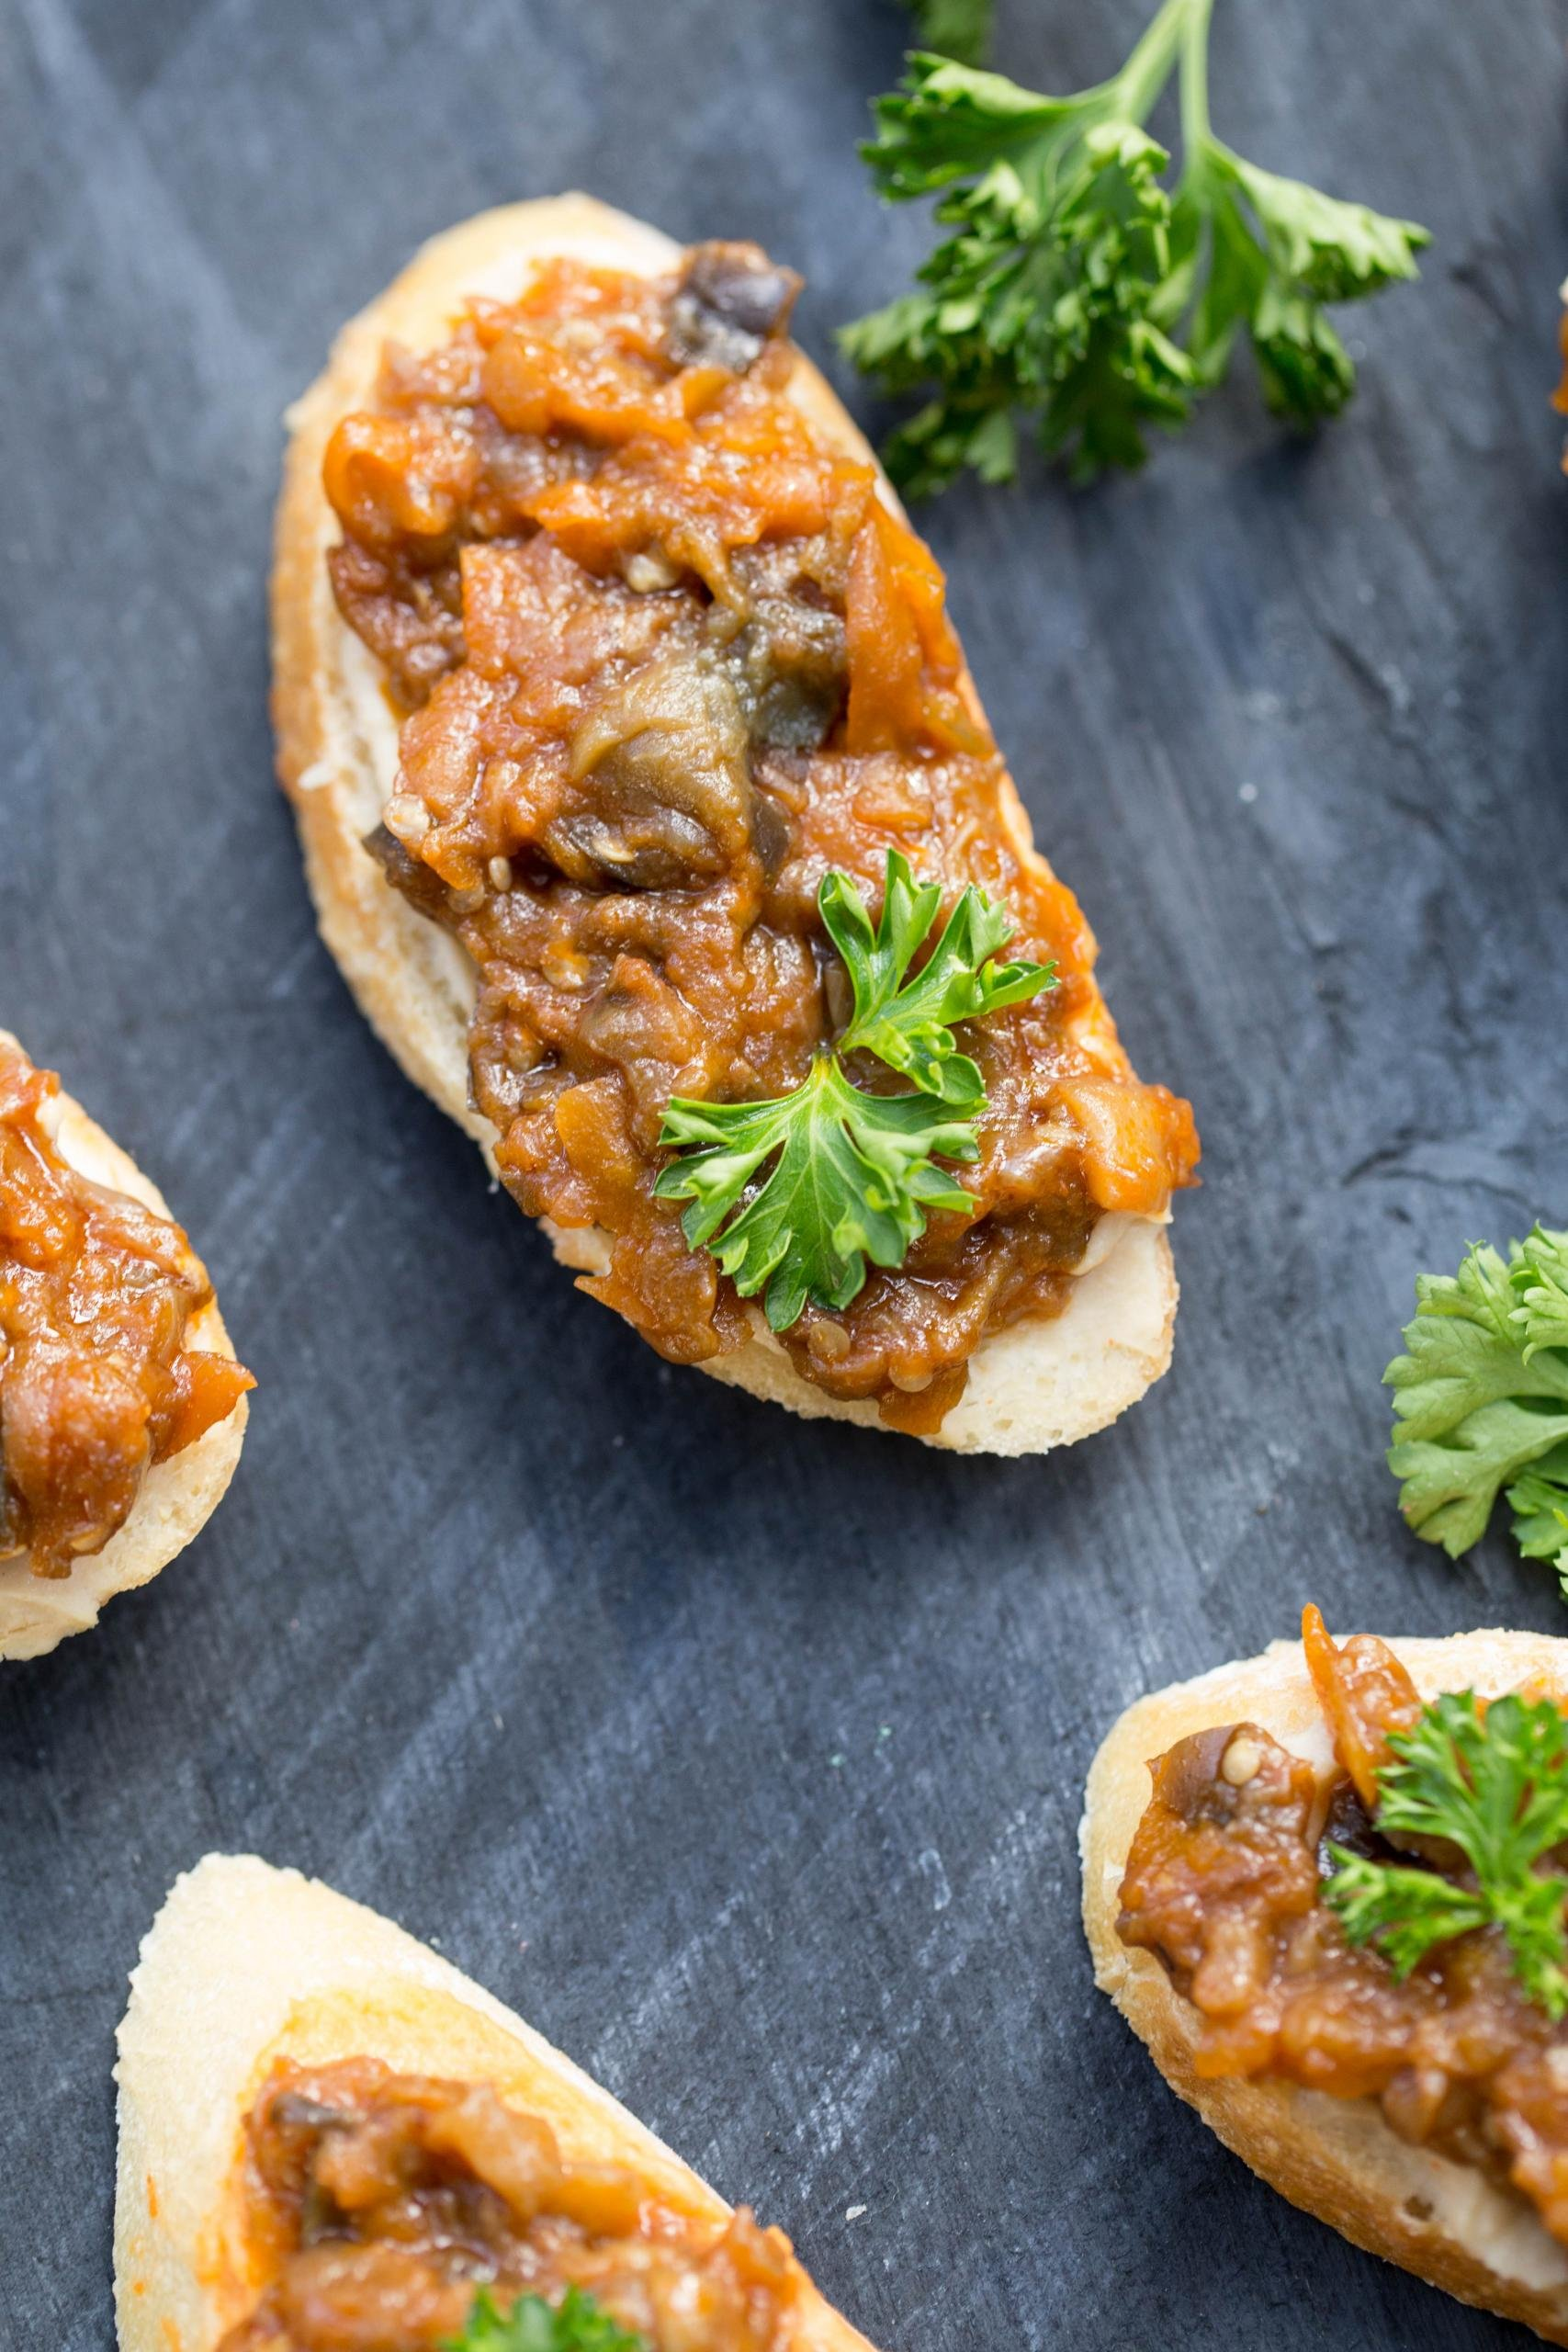 Hummus Eggplant Canapés on a cutting board